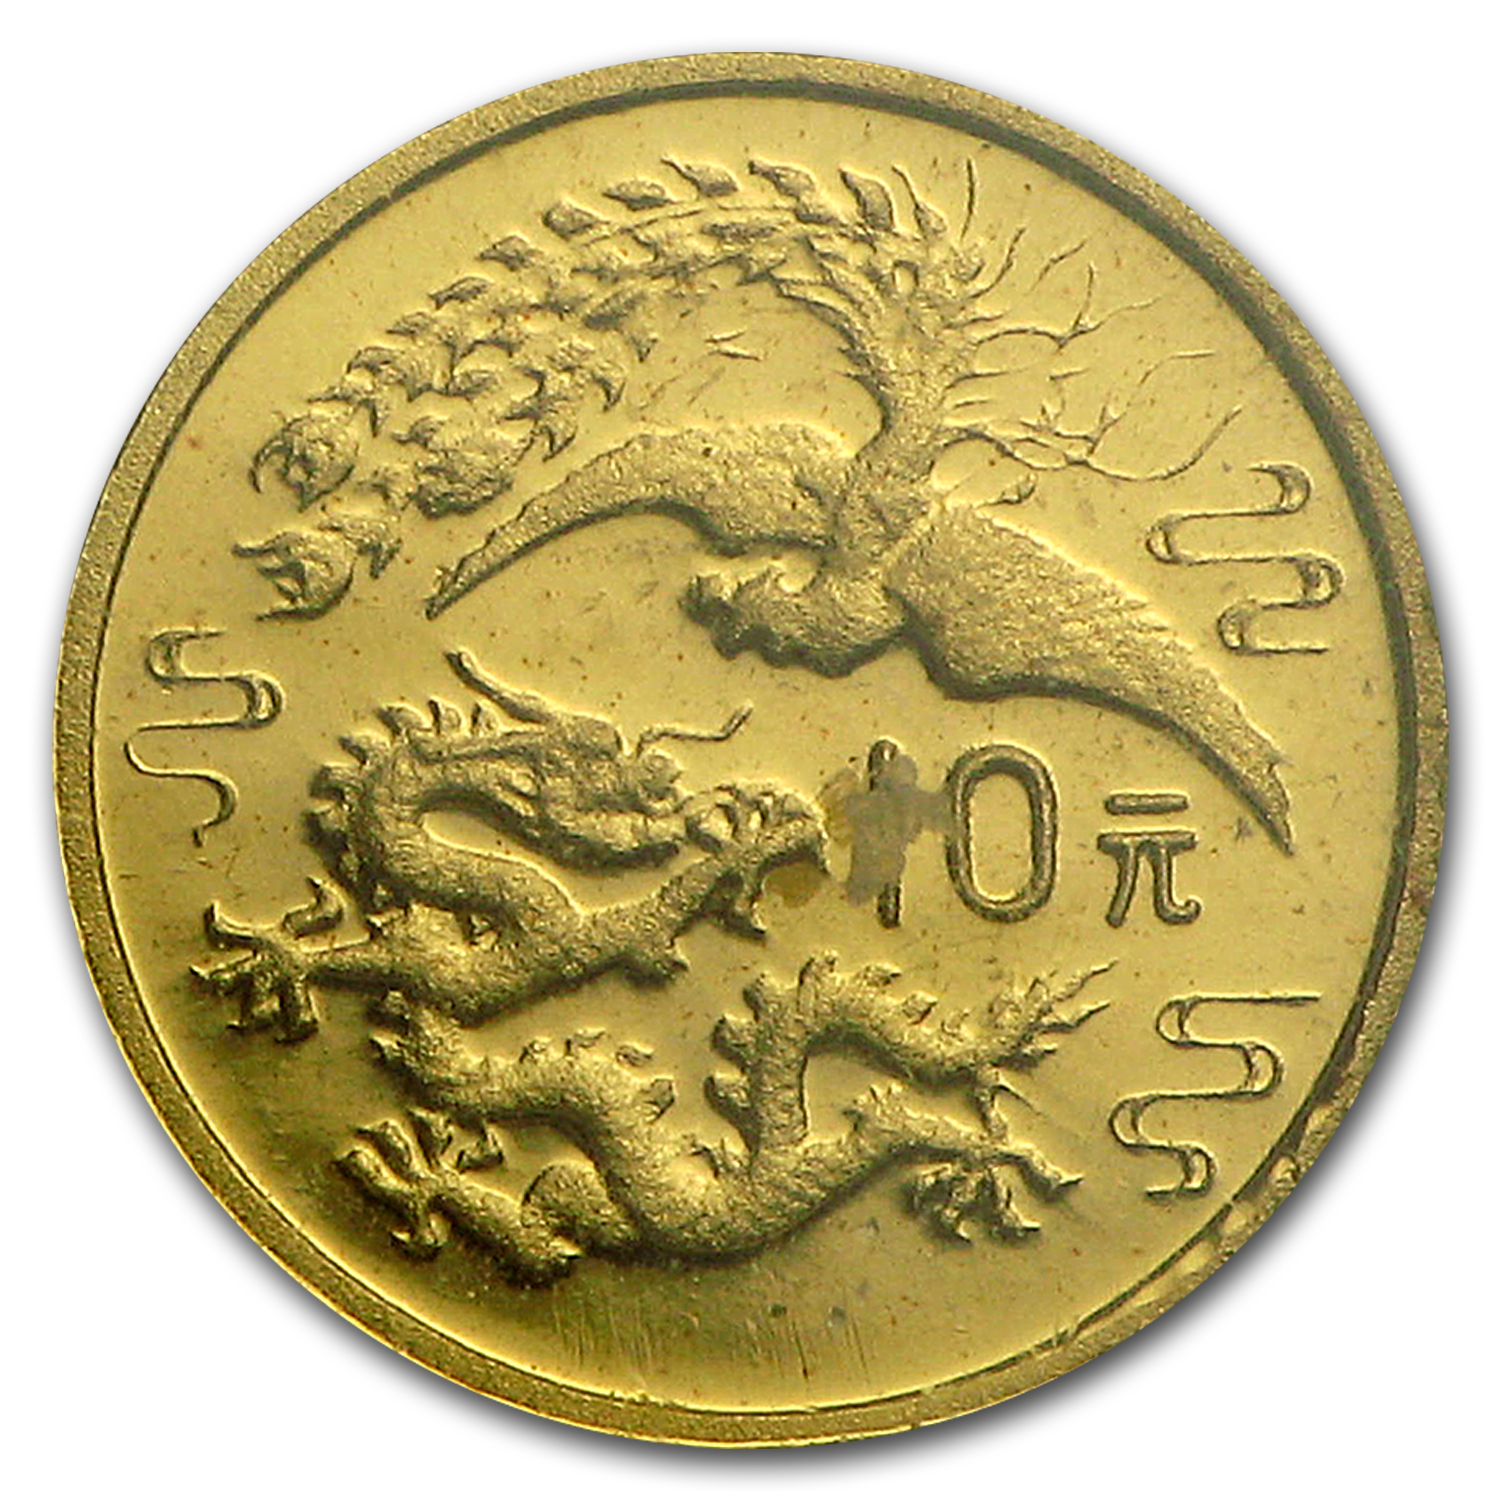 1990 China Gold 1 Gram 10 Yuan Dragon/Phoenix Proof